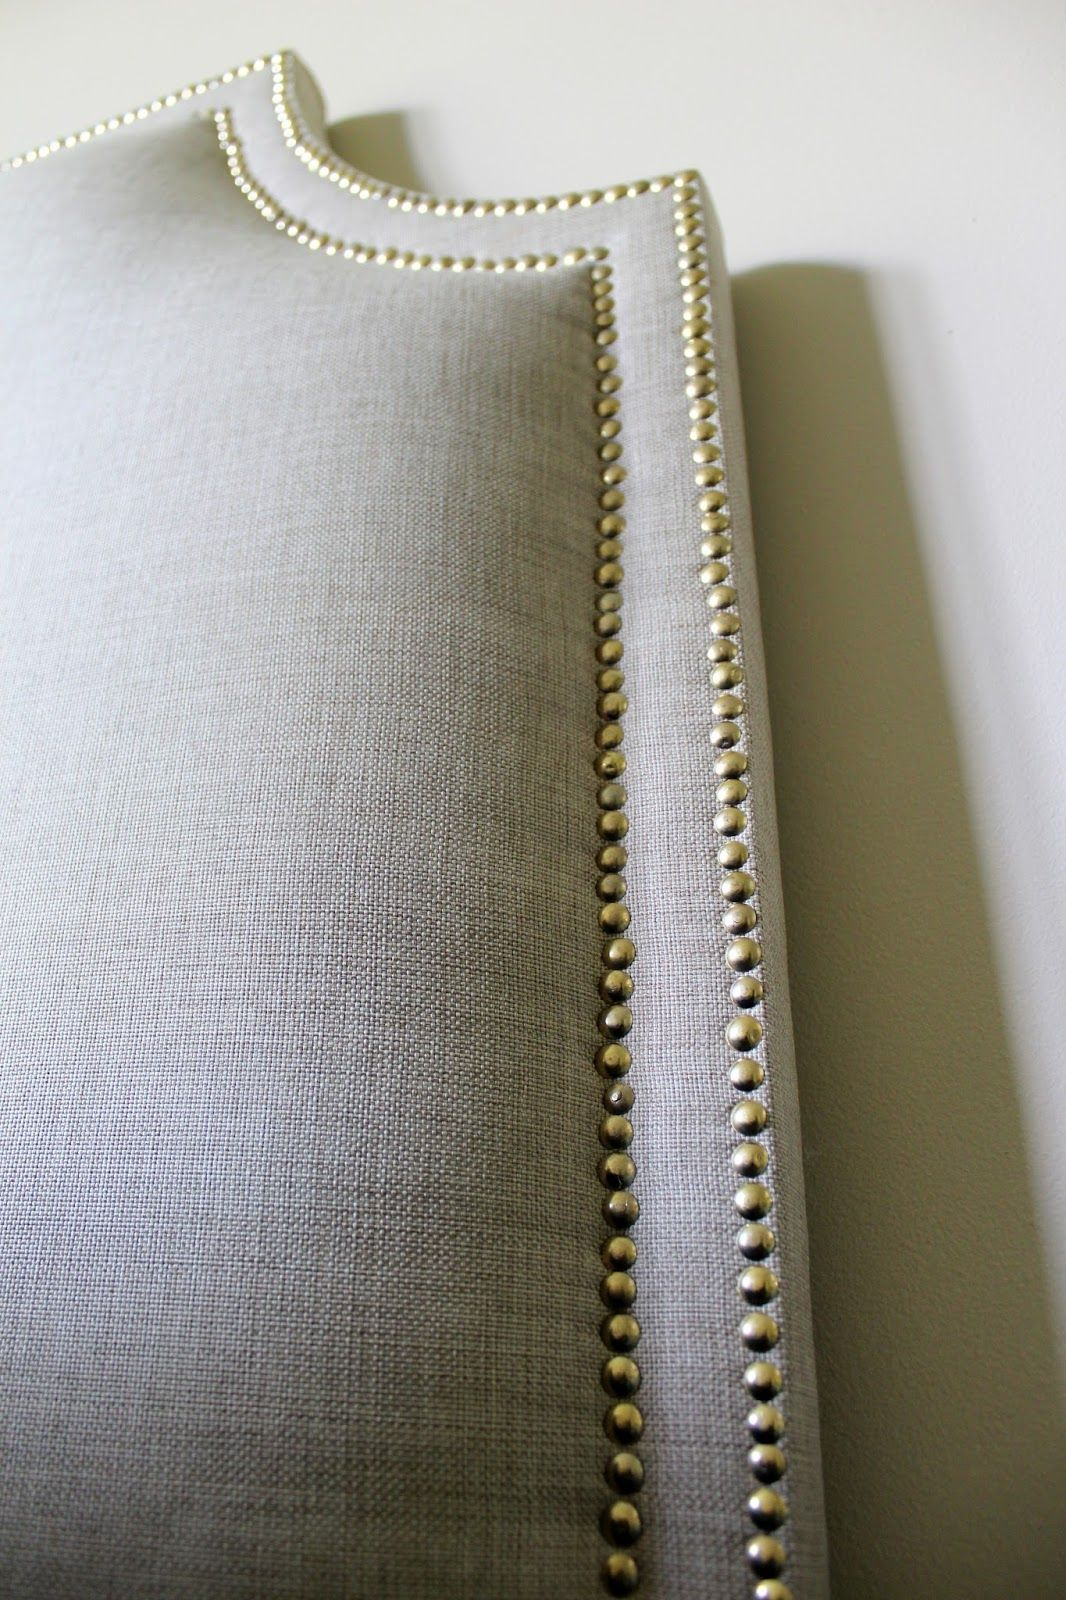 Making An Upholstered Headboard With Nailhead Trim Diy Upholstered Headboard With Nailhead Trim Tutorial 7 Simple